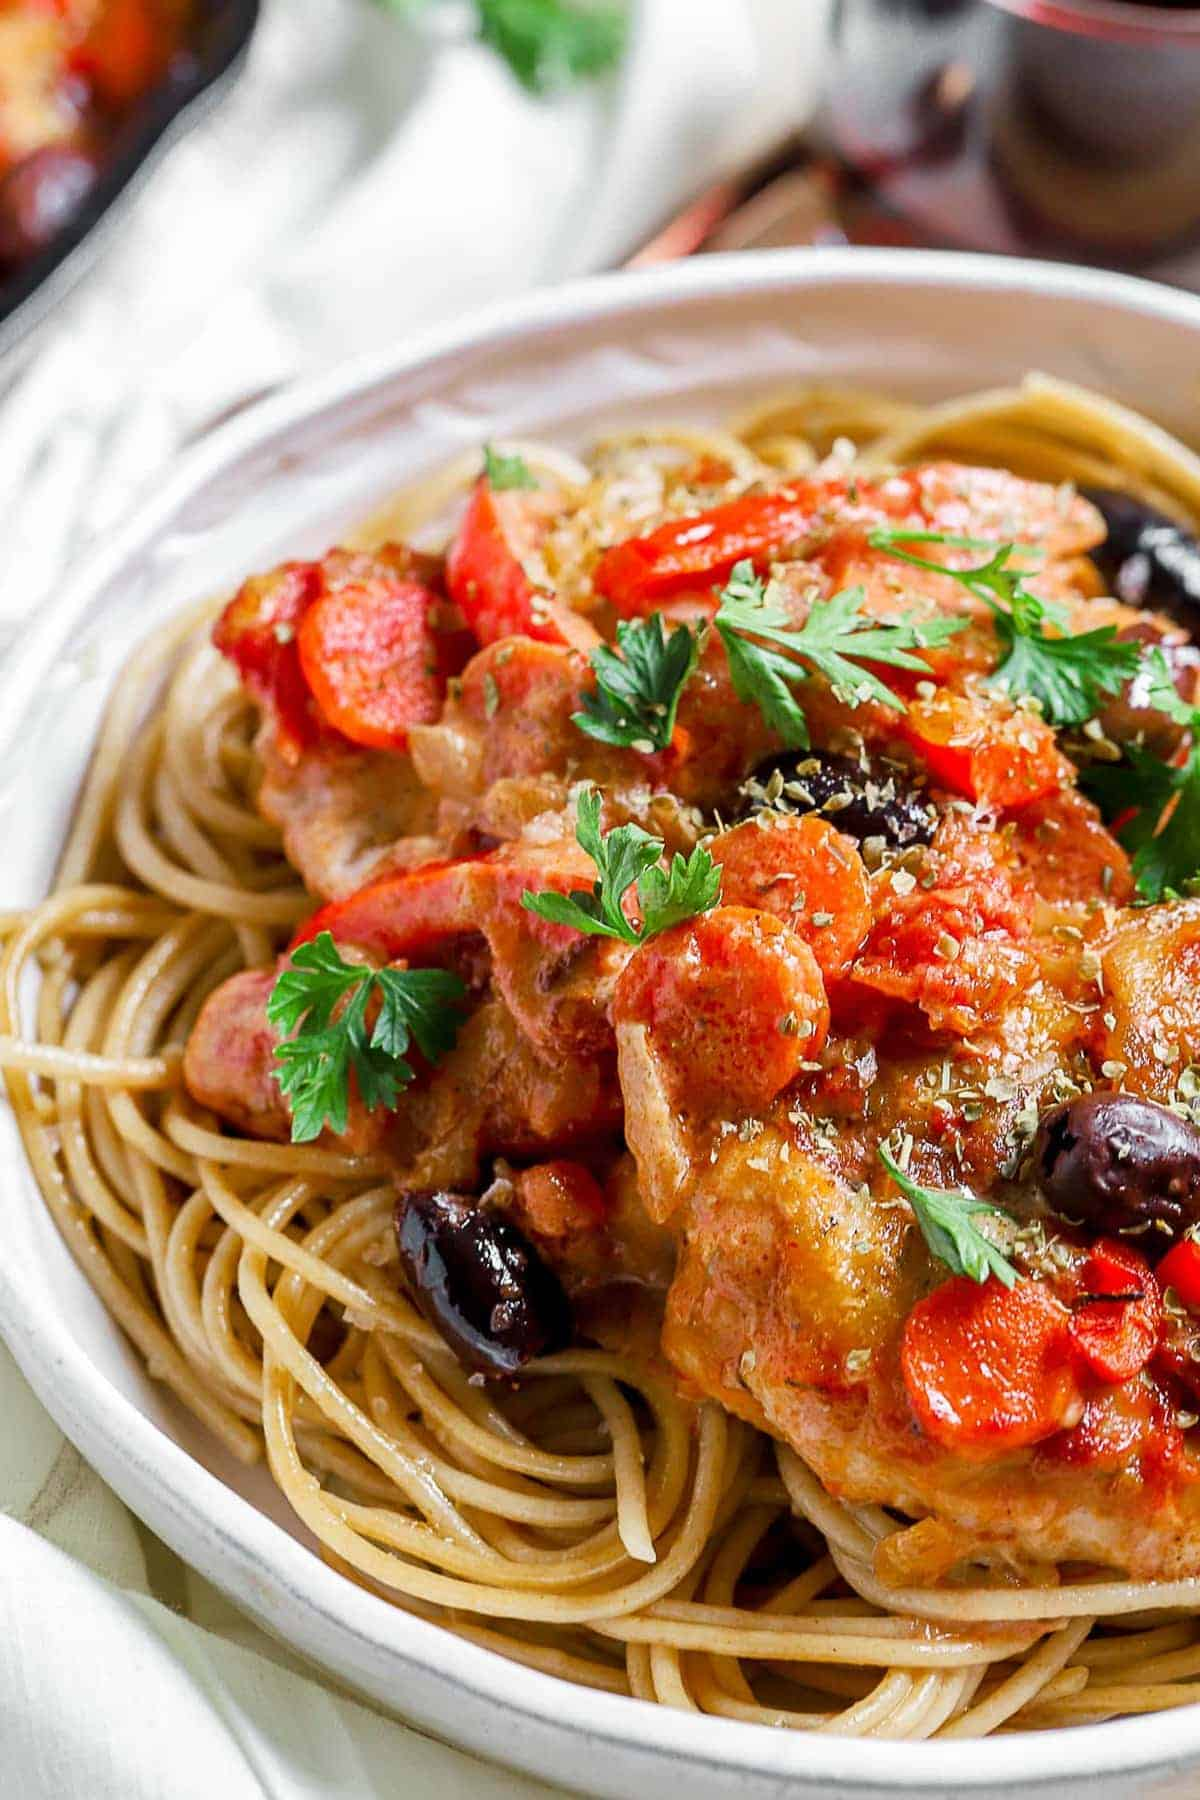 Chicken Cacciatore served with pasta in a white bowl